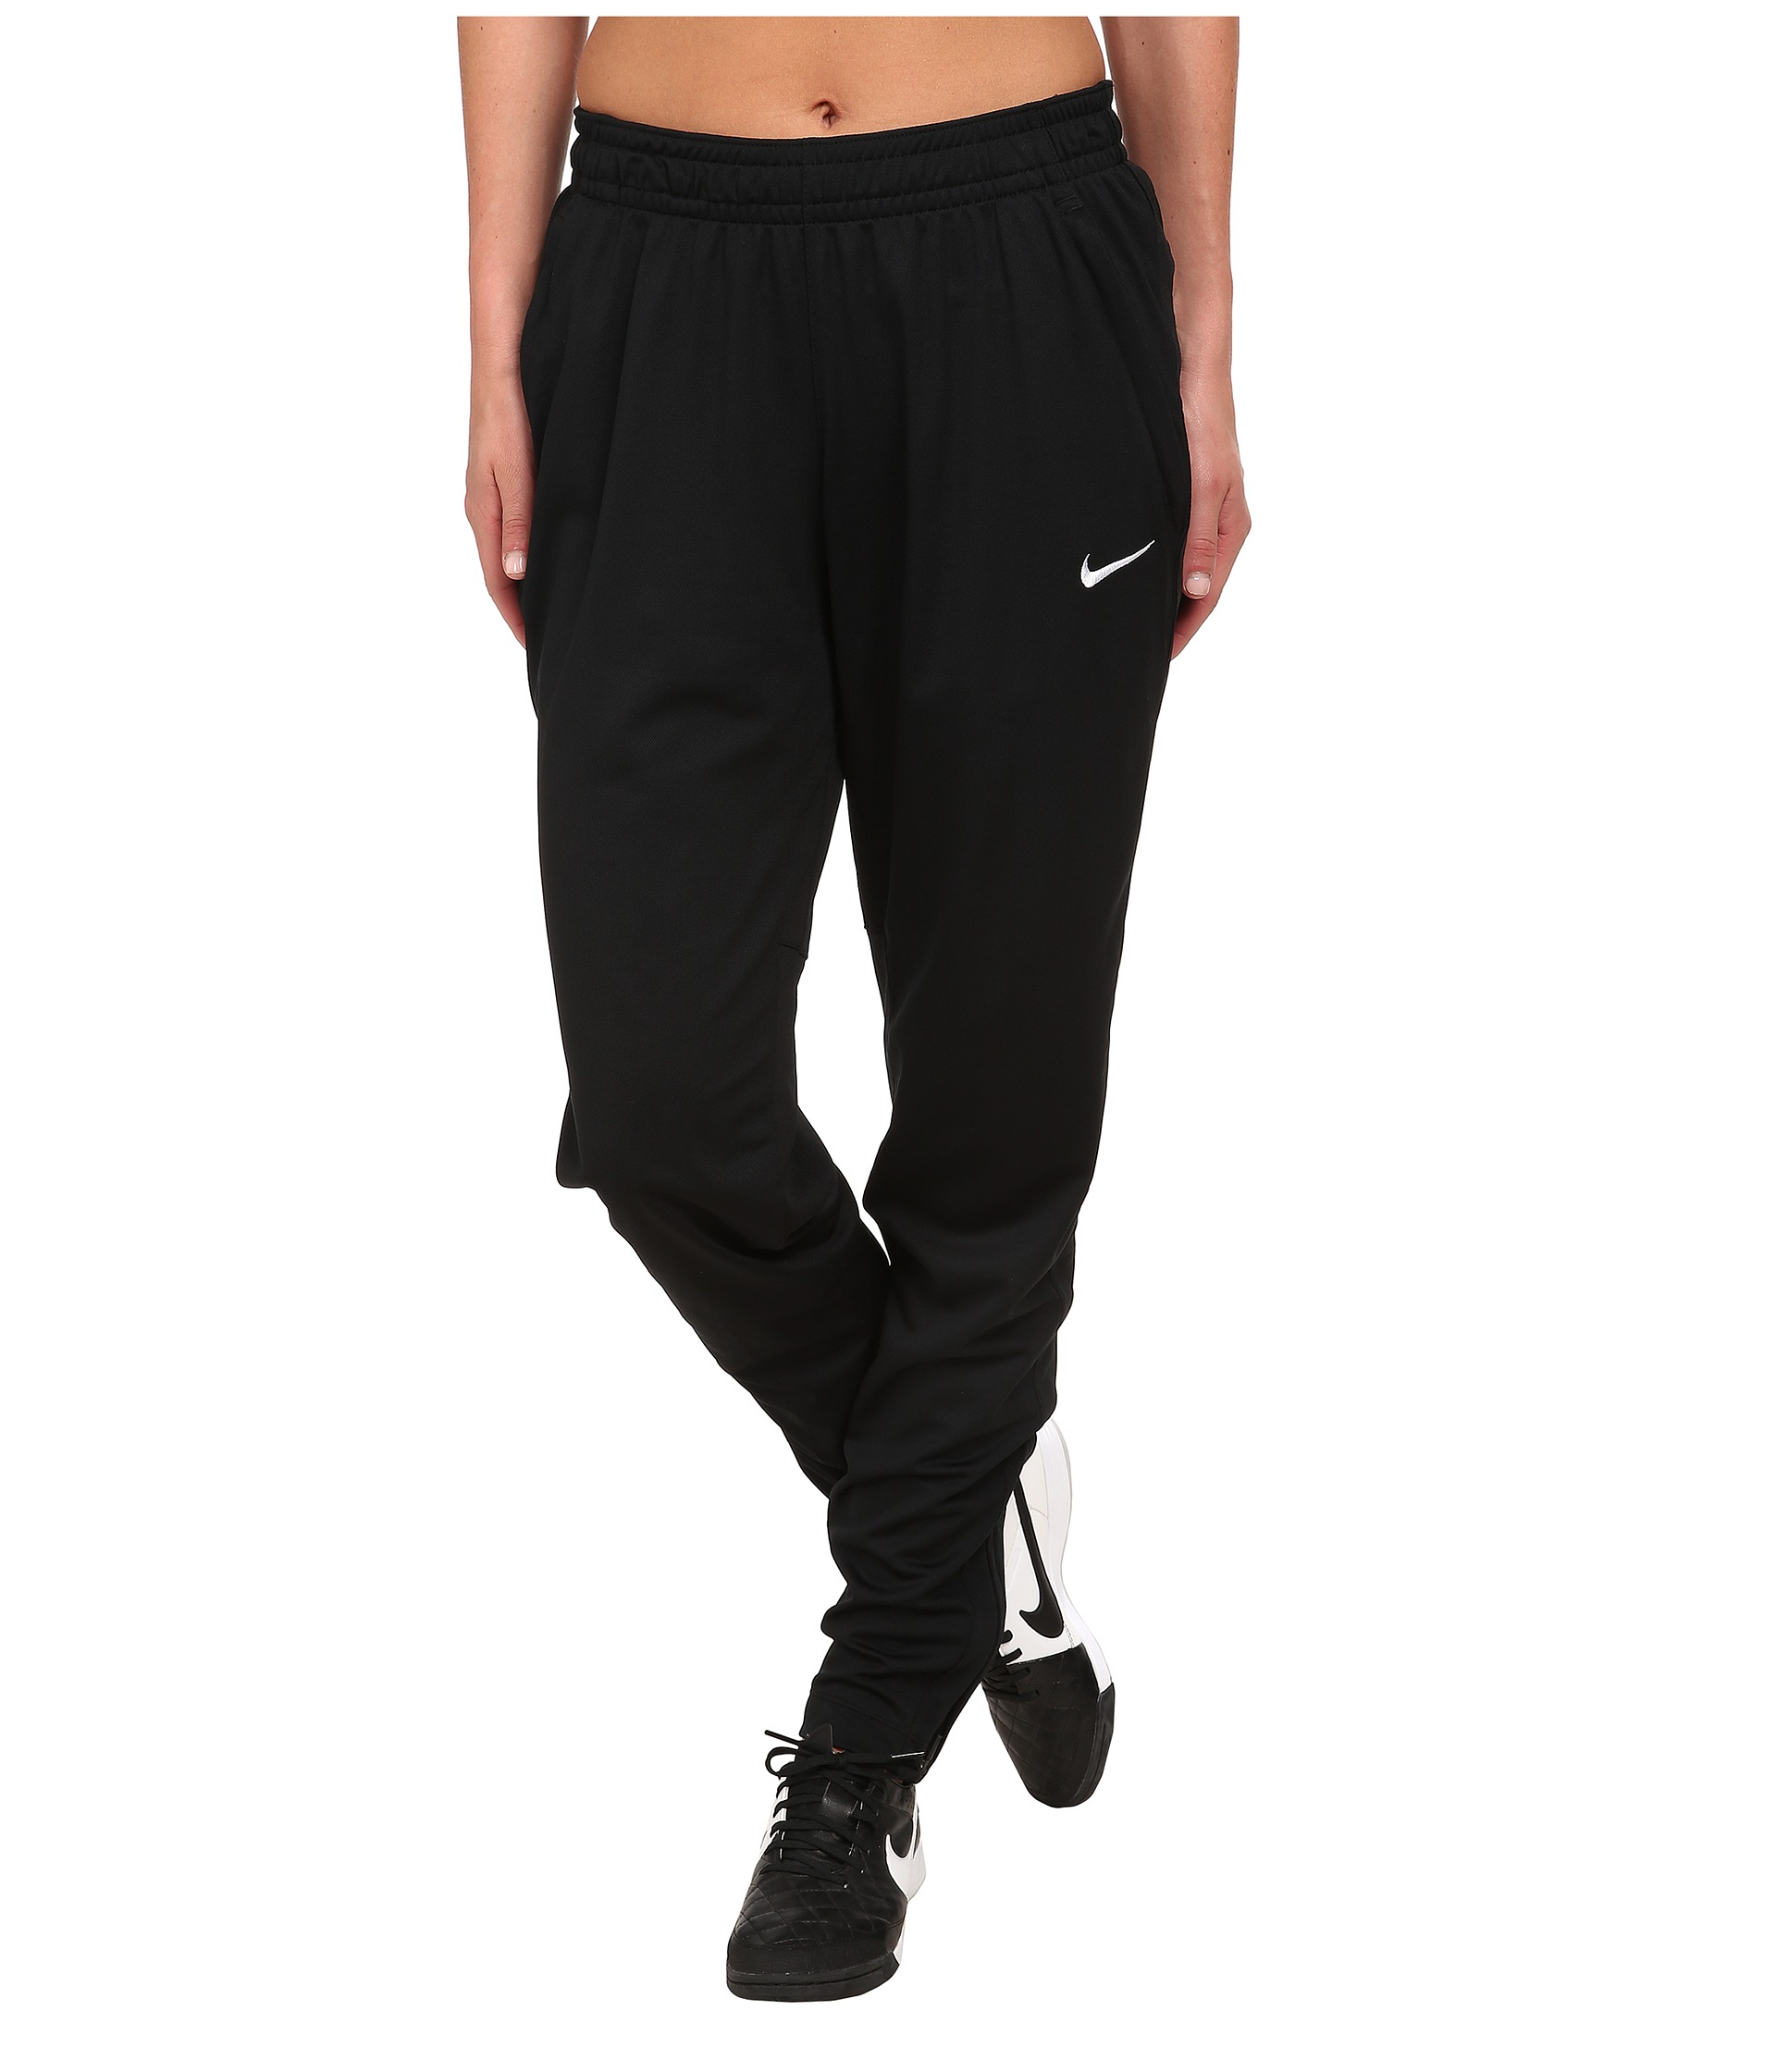 Awesome Lounge Wear Trackbuy Mens Track Pants Sports Wear Mens